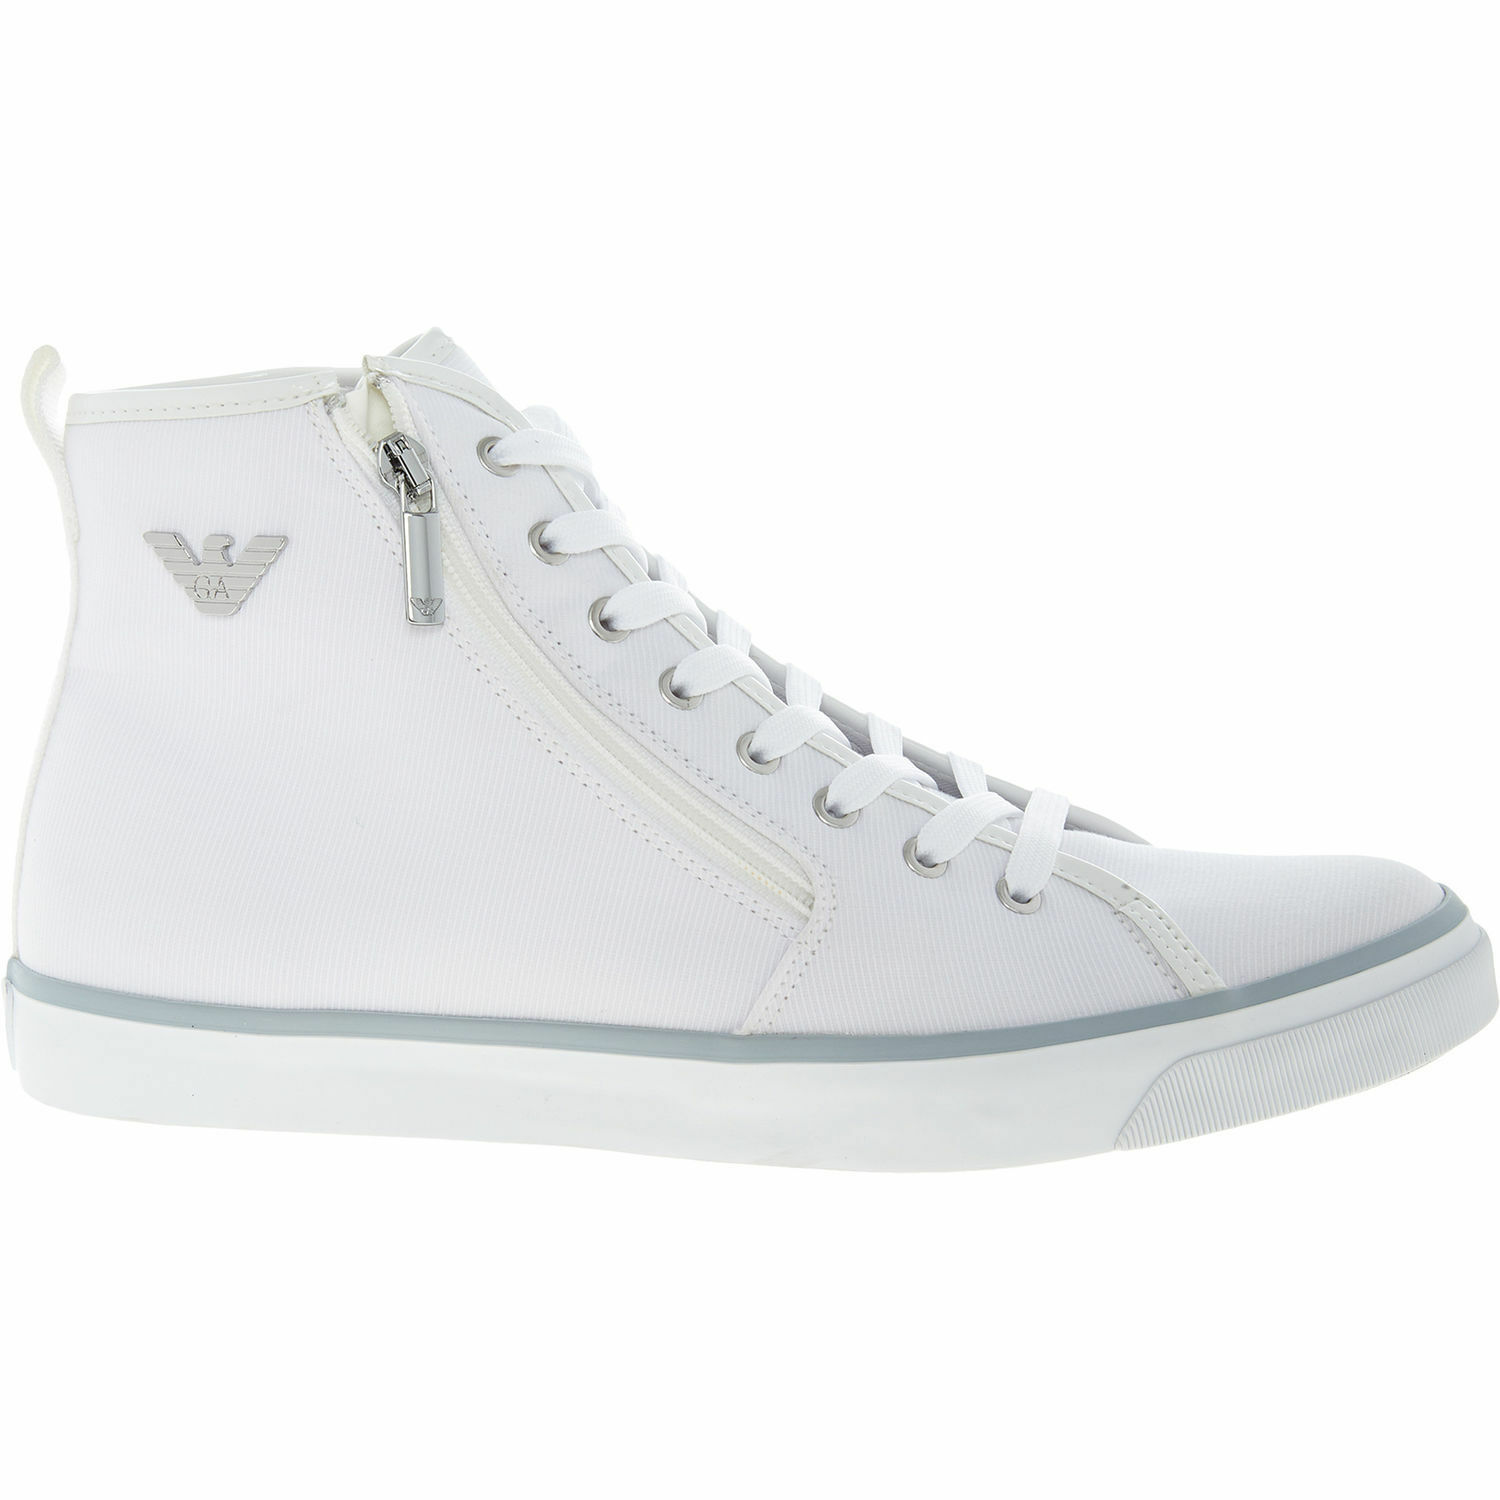 EMPORIO ARMANI Women's  White Canvas High Top Sneakers, size UK 4   EU 37